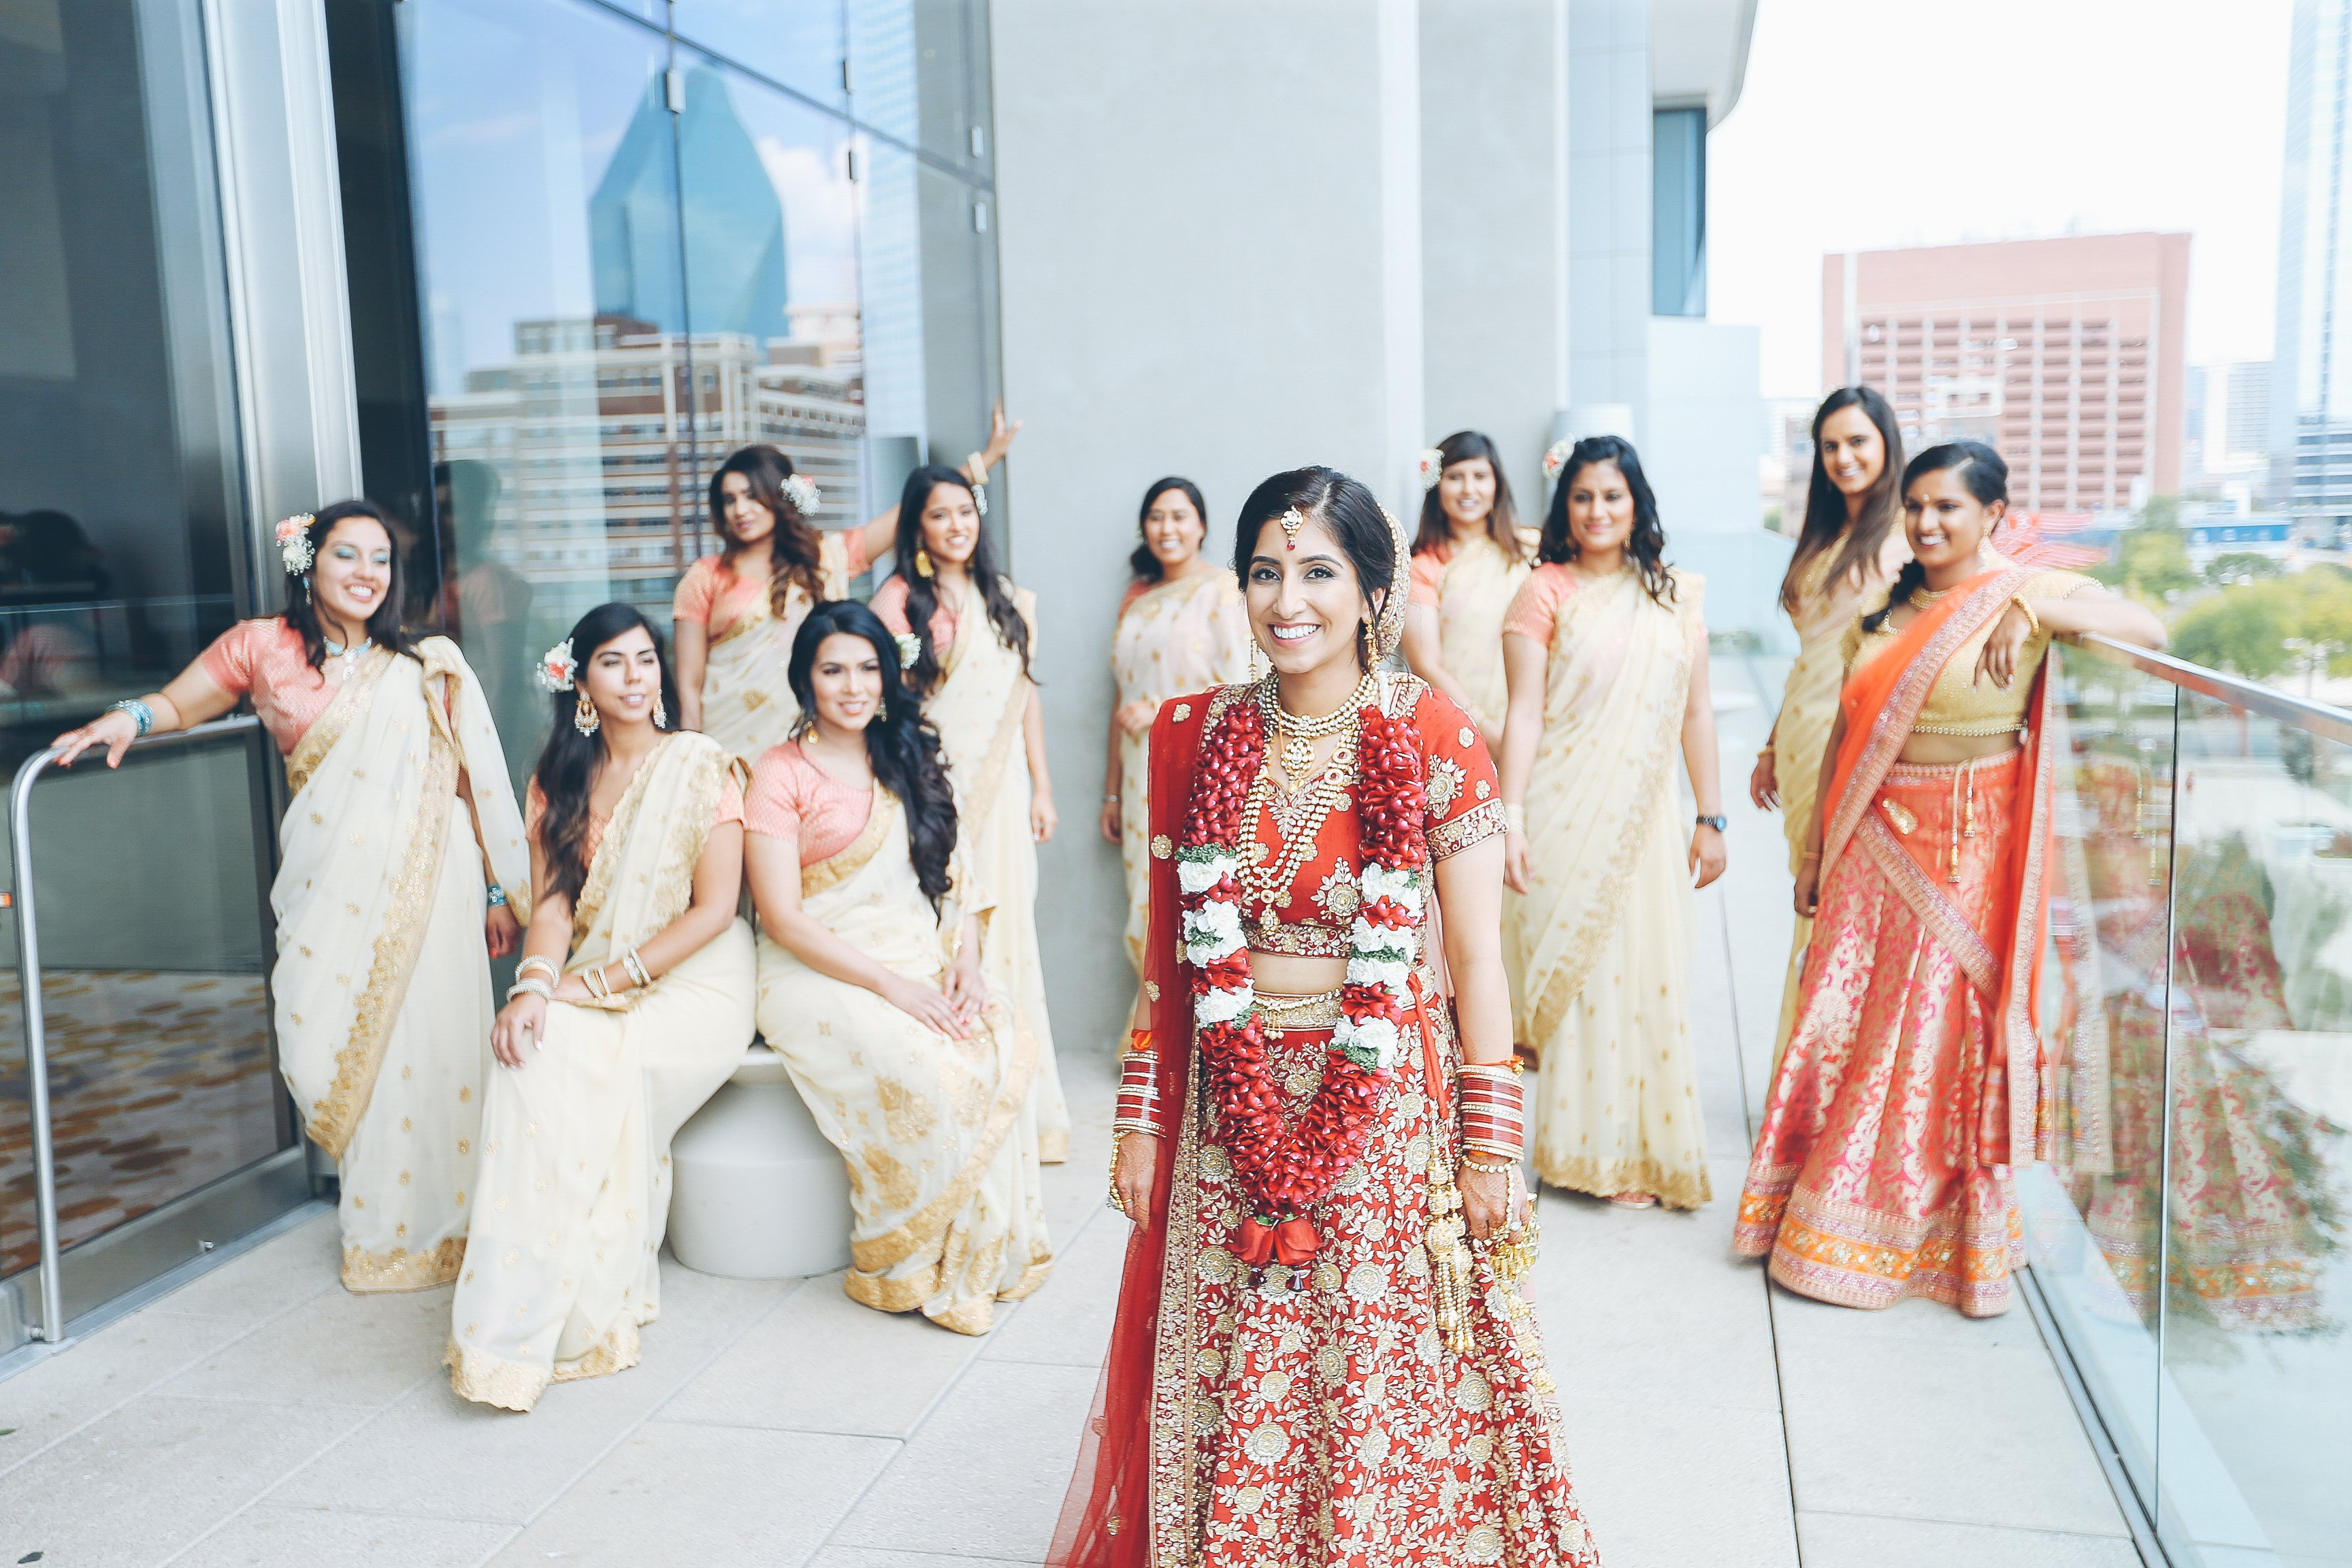 Top 18 Indian Wedding Reception Bridesmaids Entrance Songs